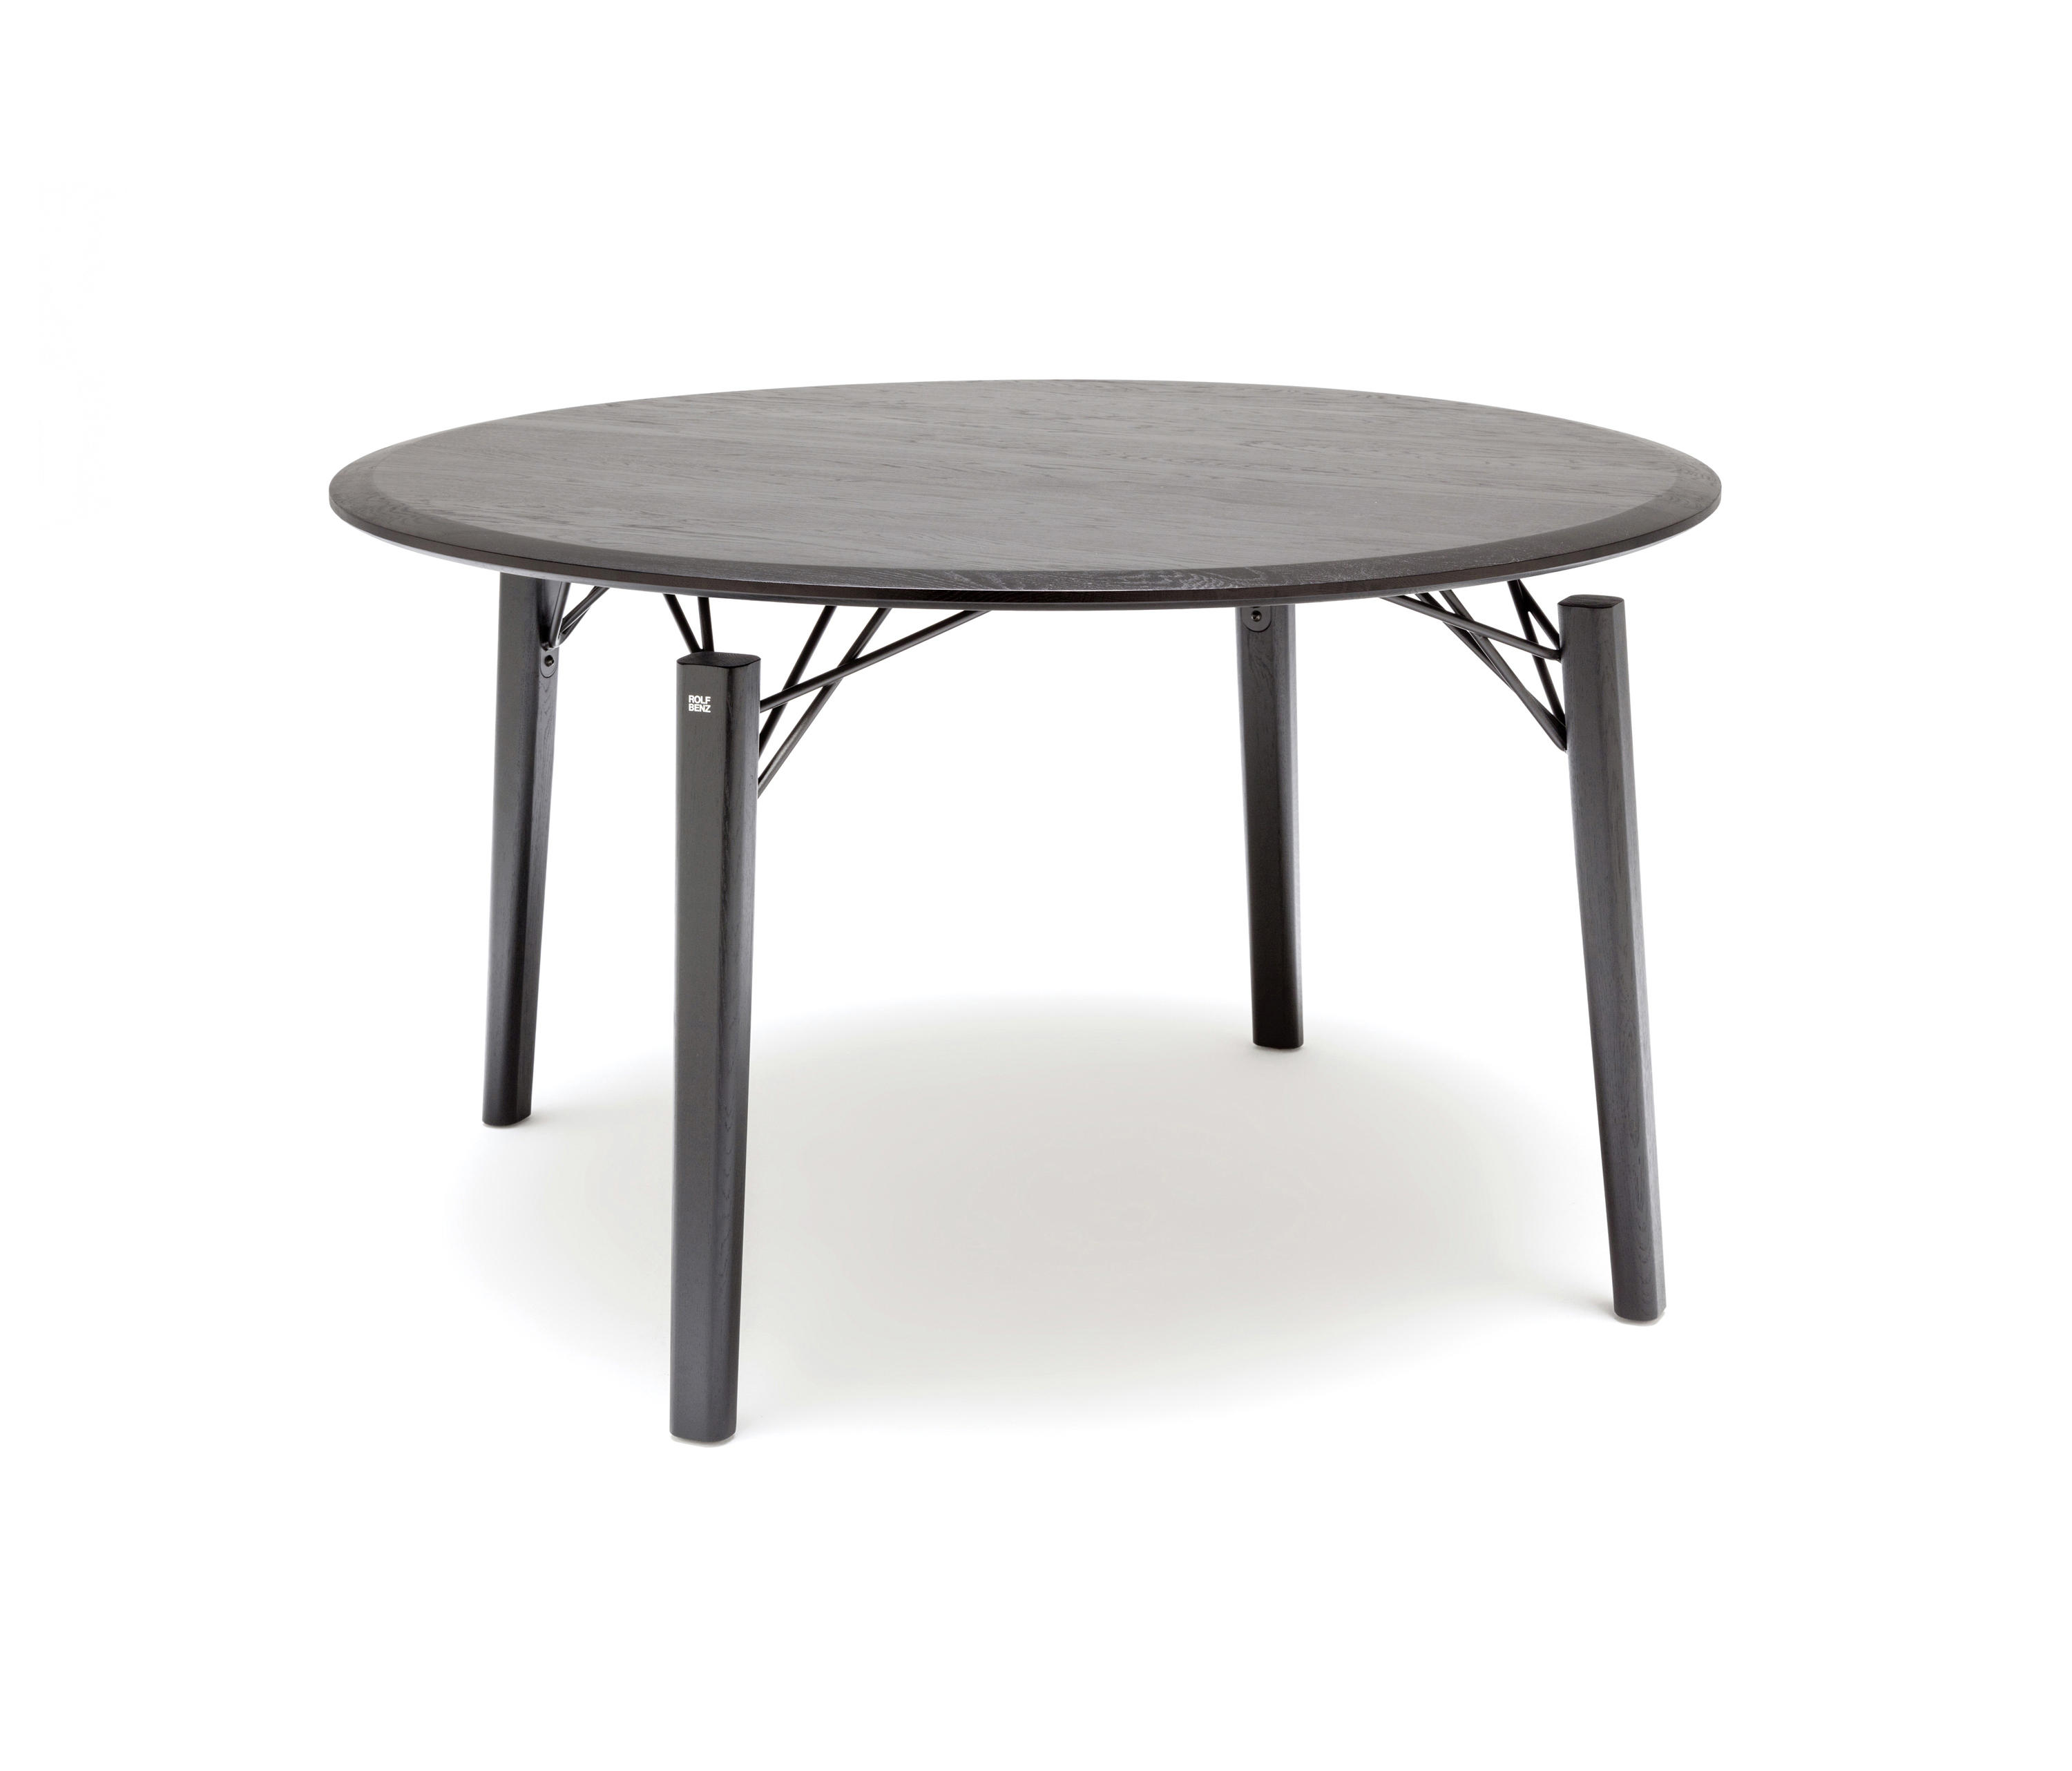 Rolf Benz 964 Dining Tables From Rolf Benz Architonic